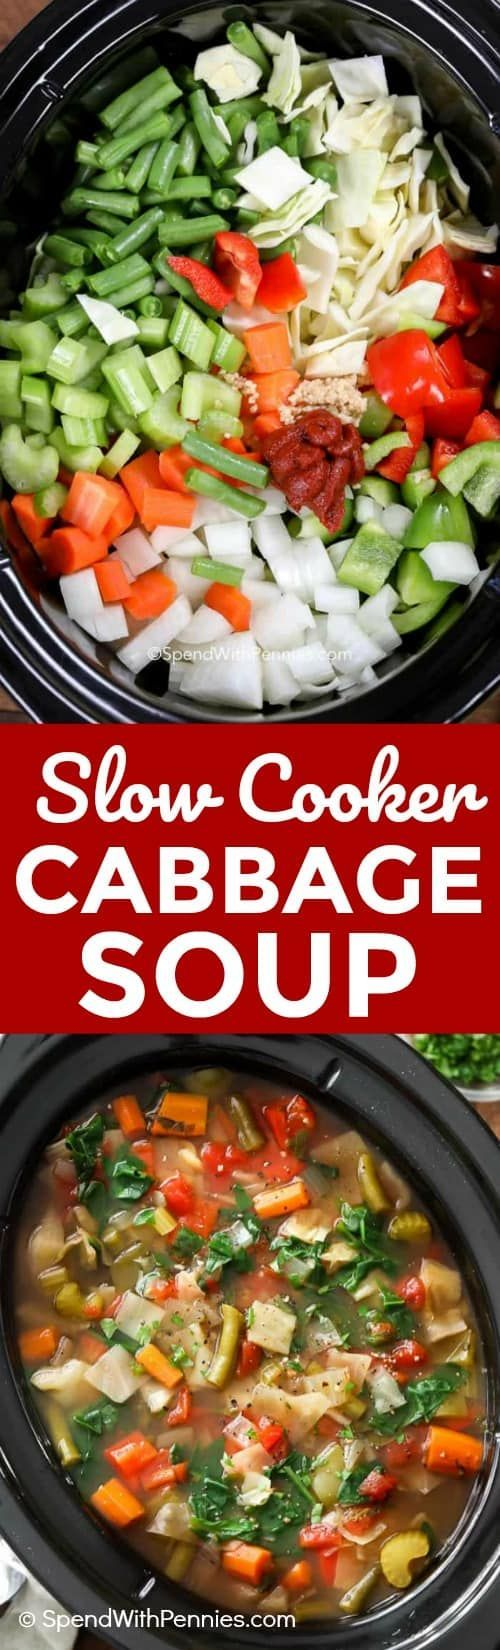 This Slow Cooker Cabbage Soup is an easy recipe and the perfect healthy lunch or dinner. #weightloss #healthyrecipe #cabbagesoup #weightwatchers #dietrecipe